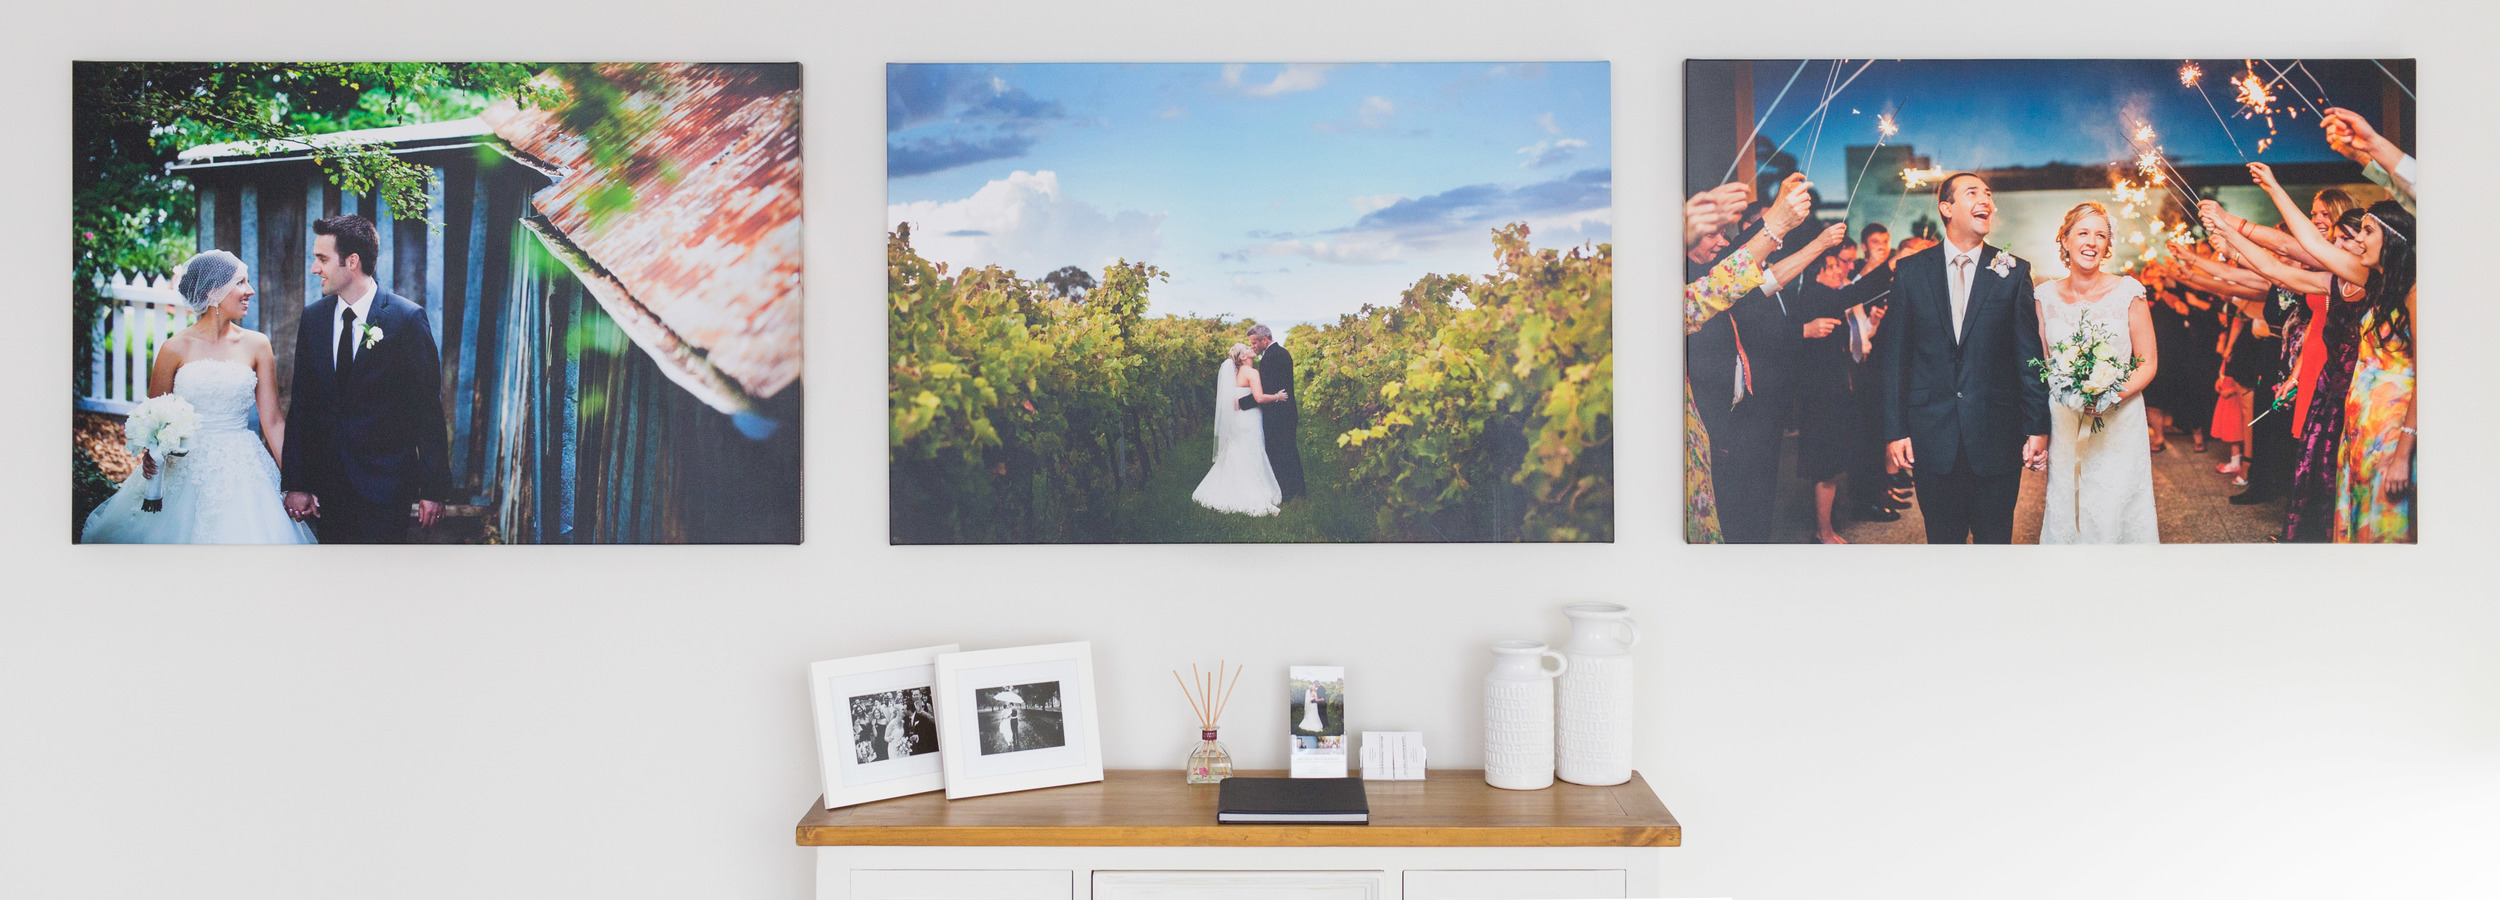 wedding-photography-canvas-canberra.jpg